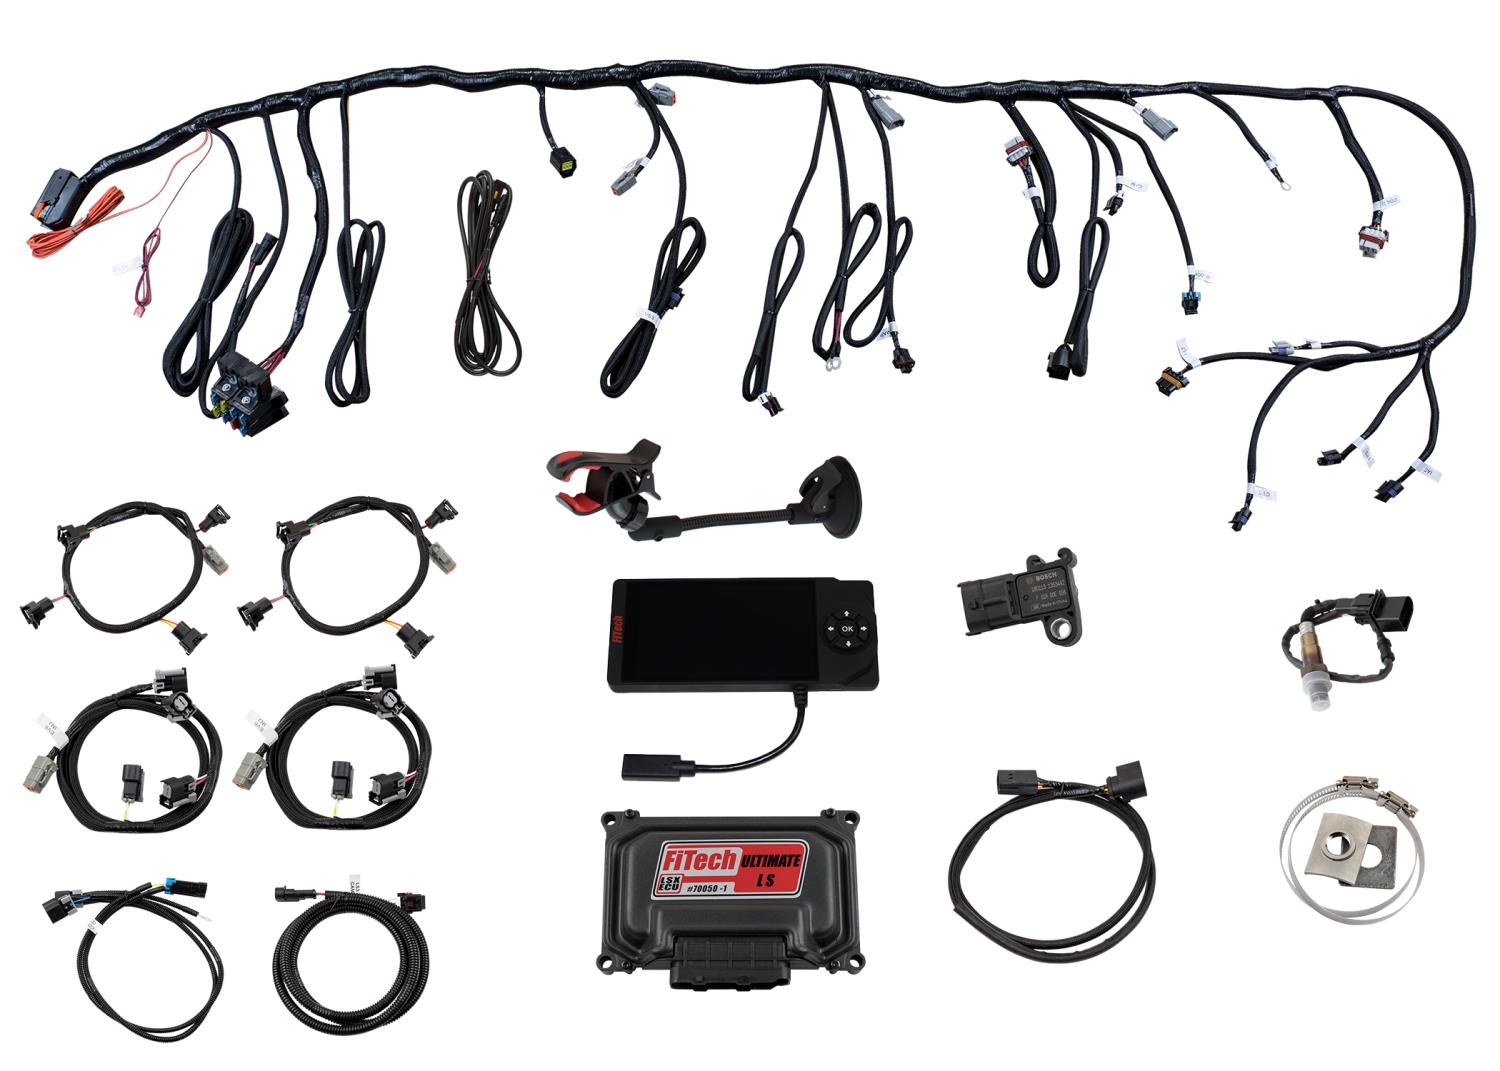 Fitech Ultimate Ls Induction System Standalone Ecu